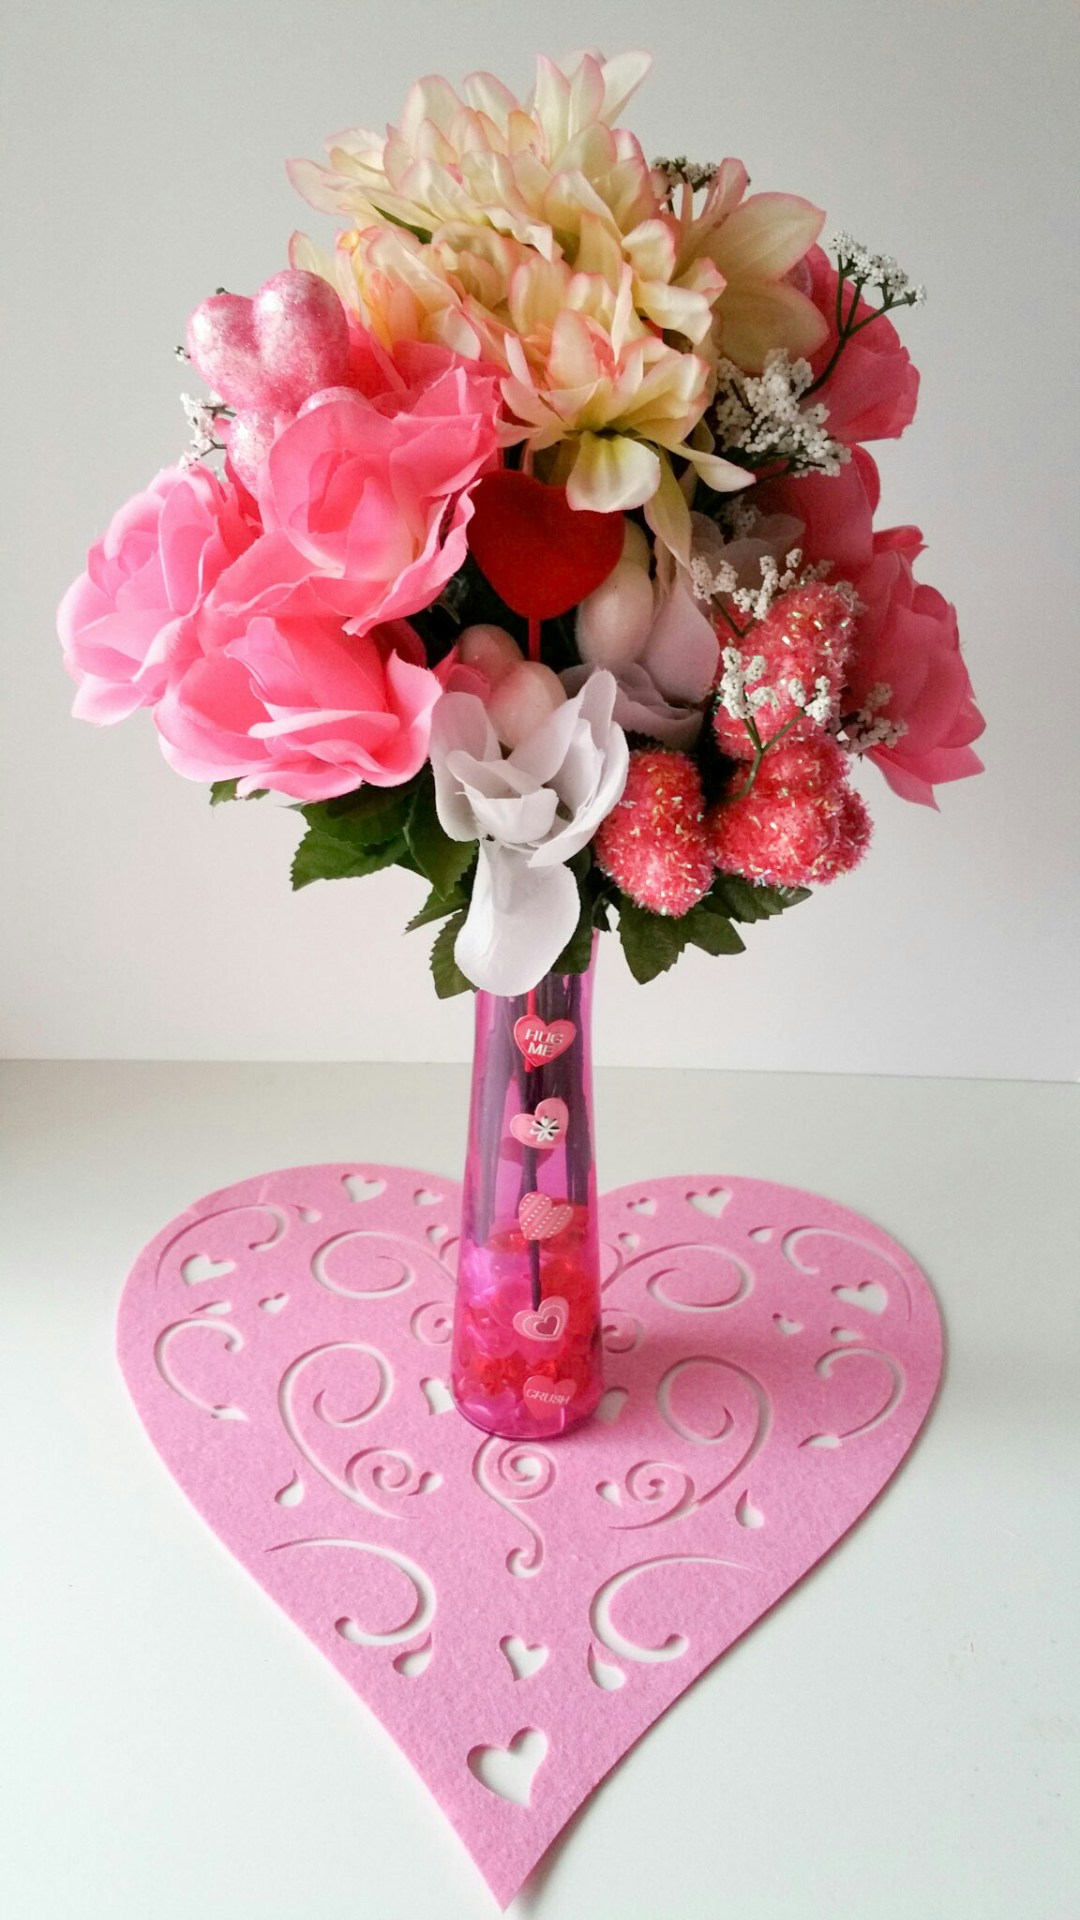 Super-Cute-DIY-Heart-Vase-Bouquet-Seventeen-LiWBF